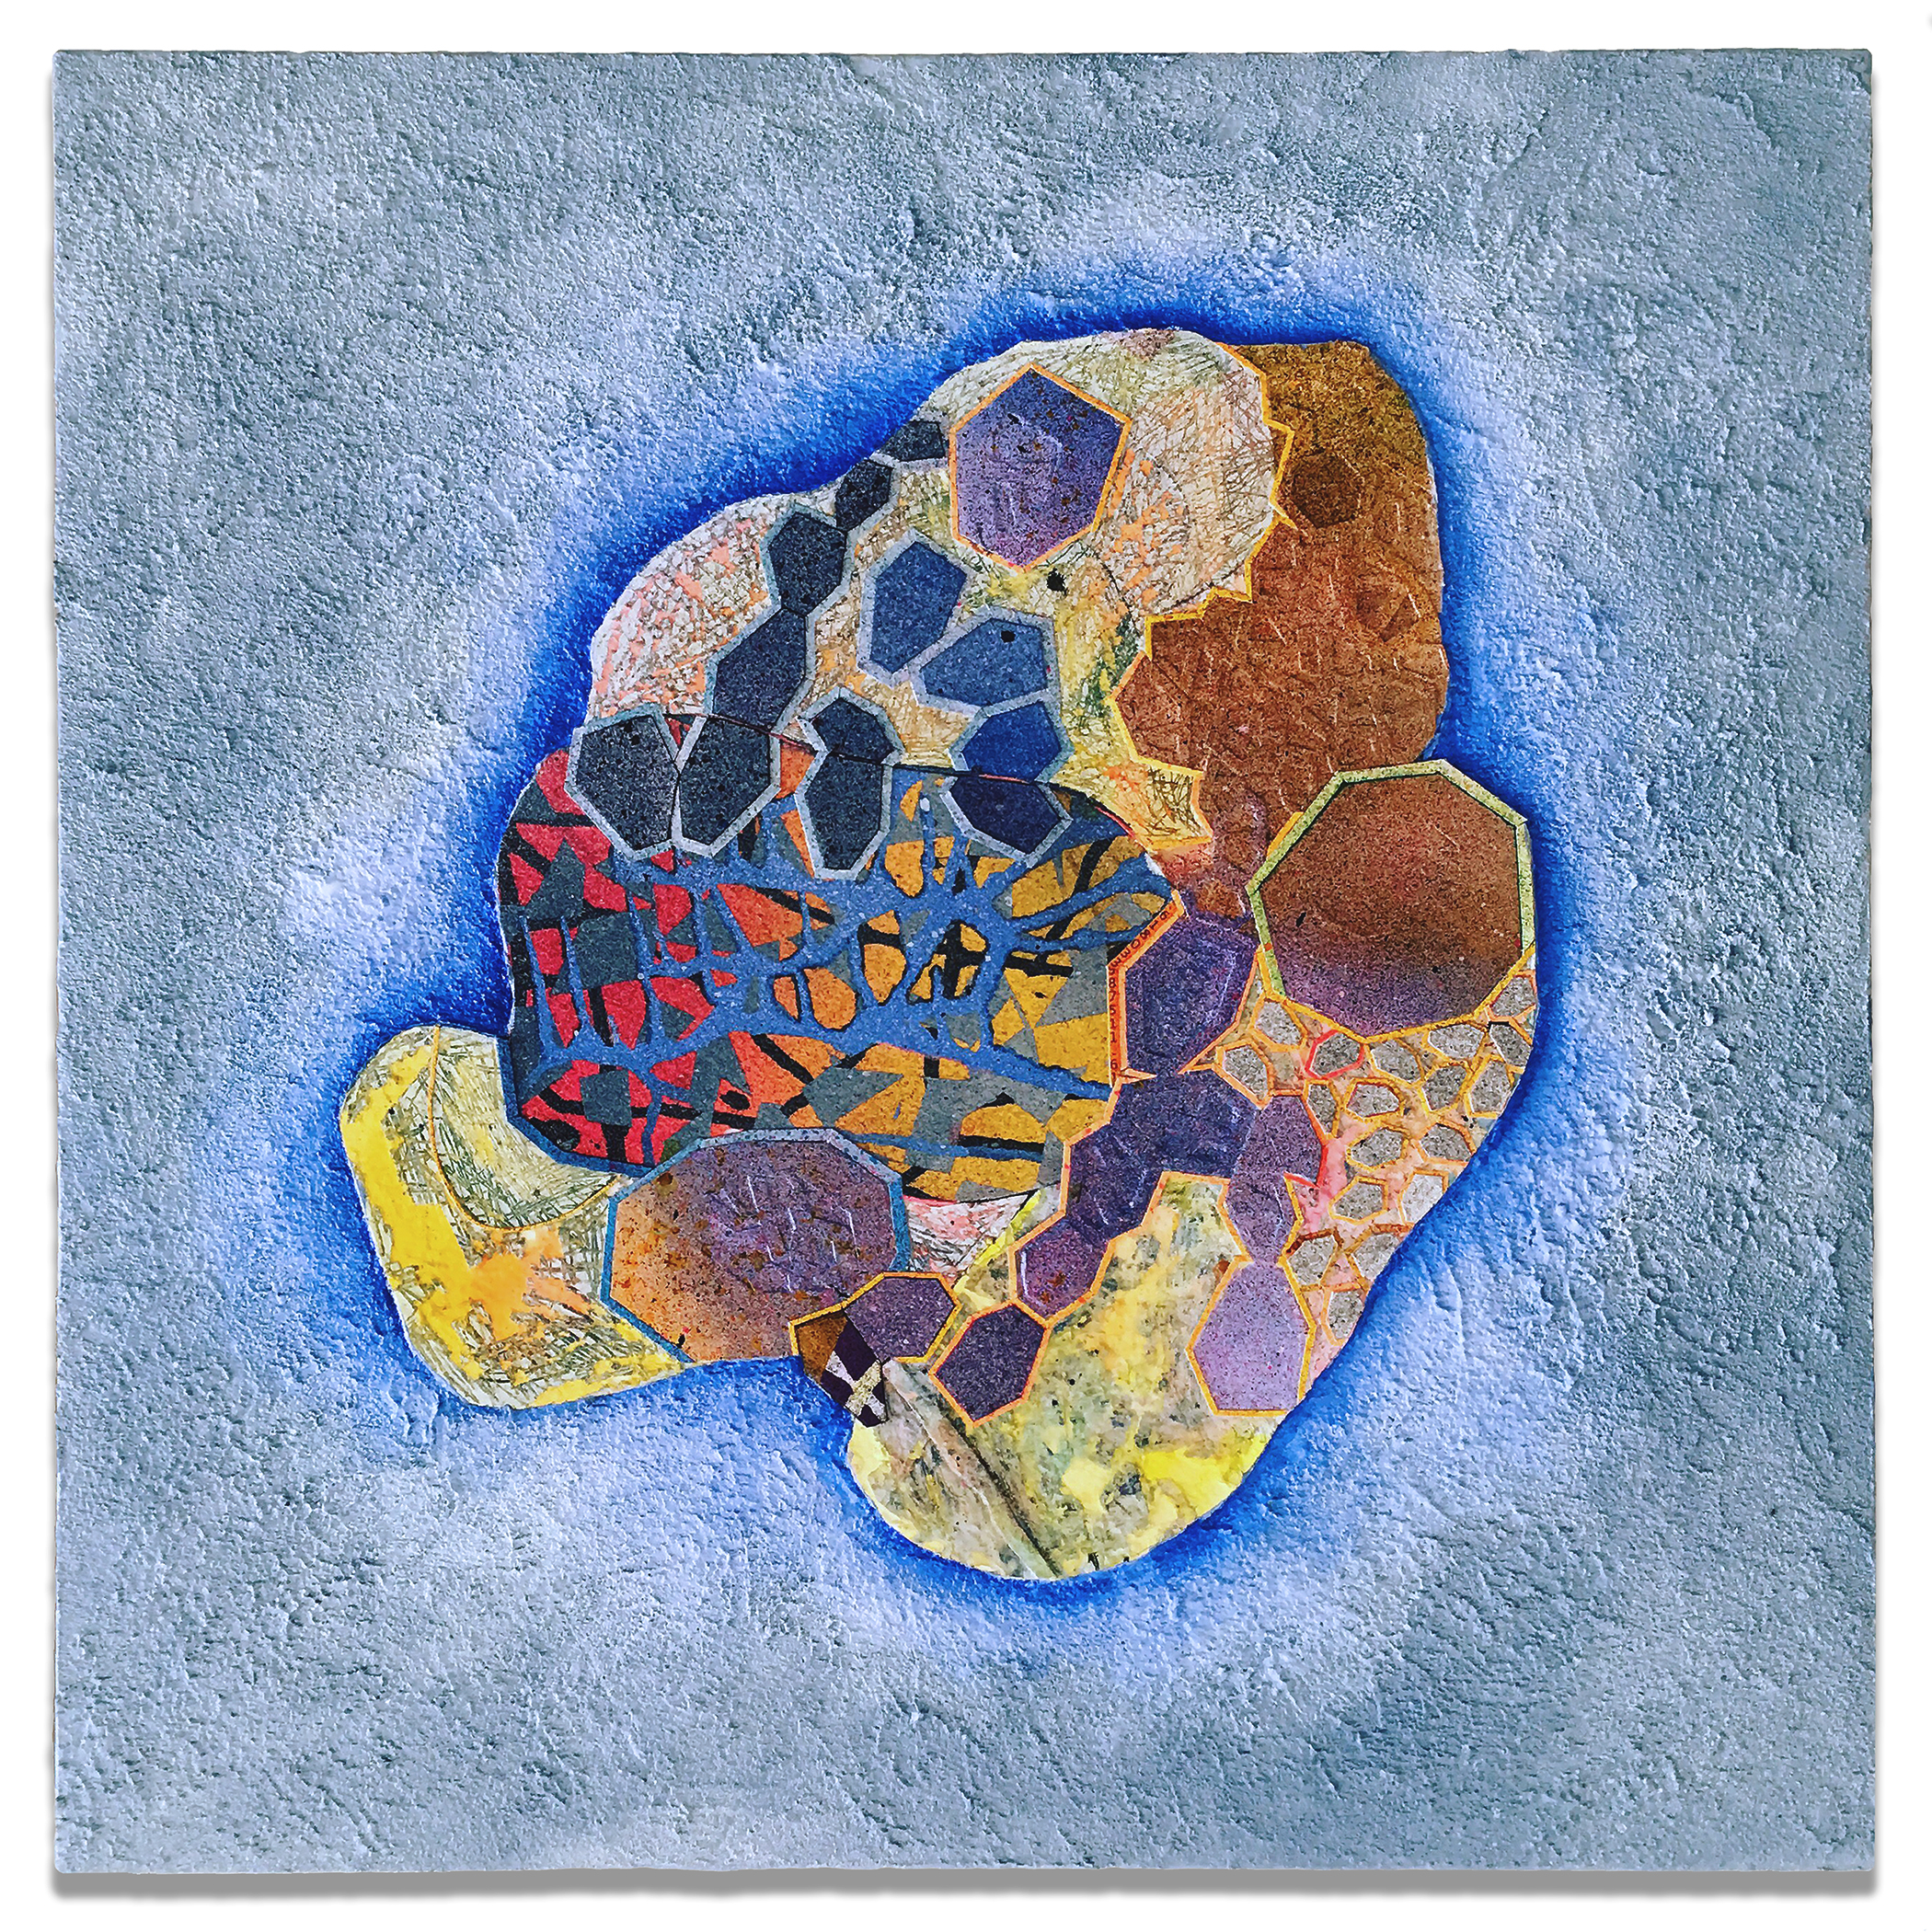 _BabyBlue_NancyBaker_2017_Paper and paint mounted on wood panel_18 inches by 18 inches_$1800.jpg